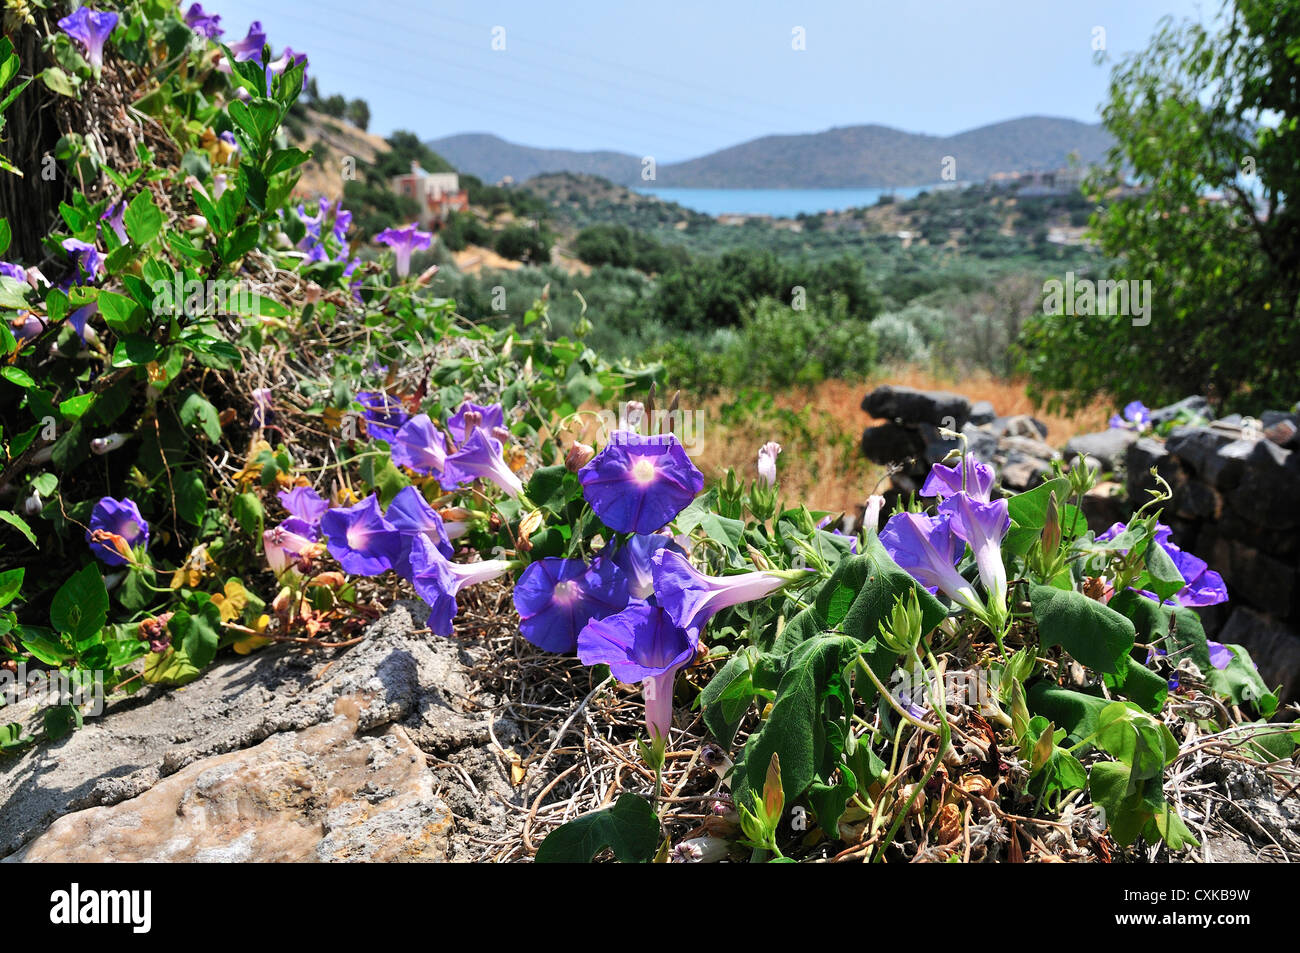 Morning Glory or Convolvulus covering rocks with Mirabello in distance in village of Pano Elounda, Crete, Greece - Stock Image